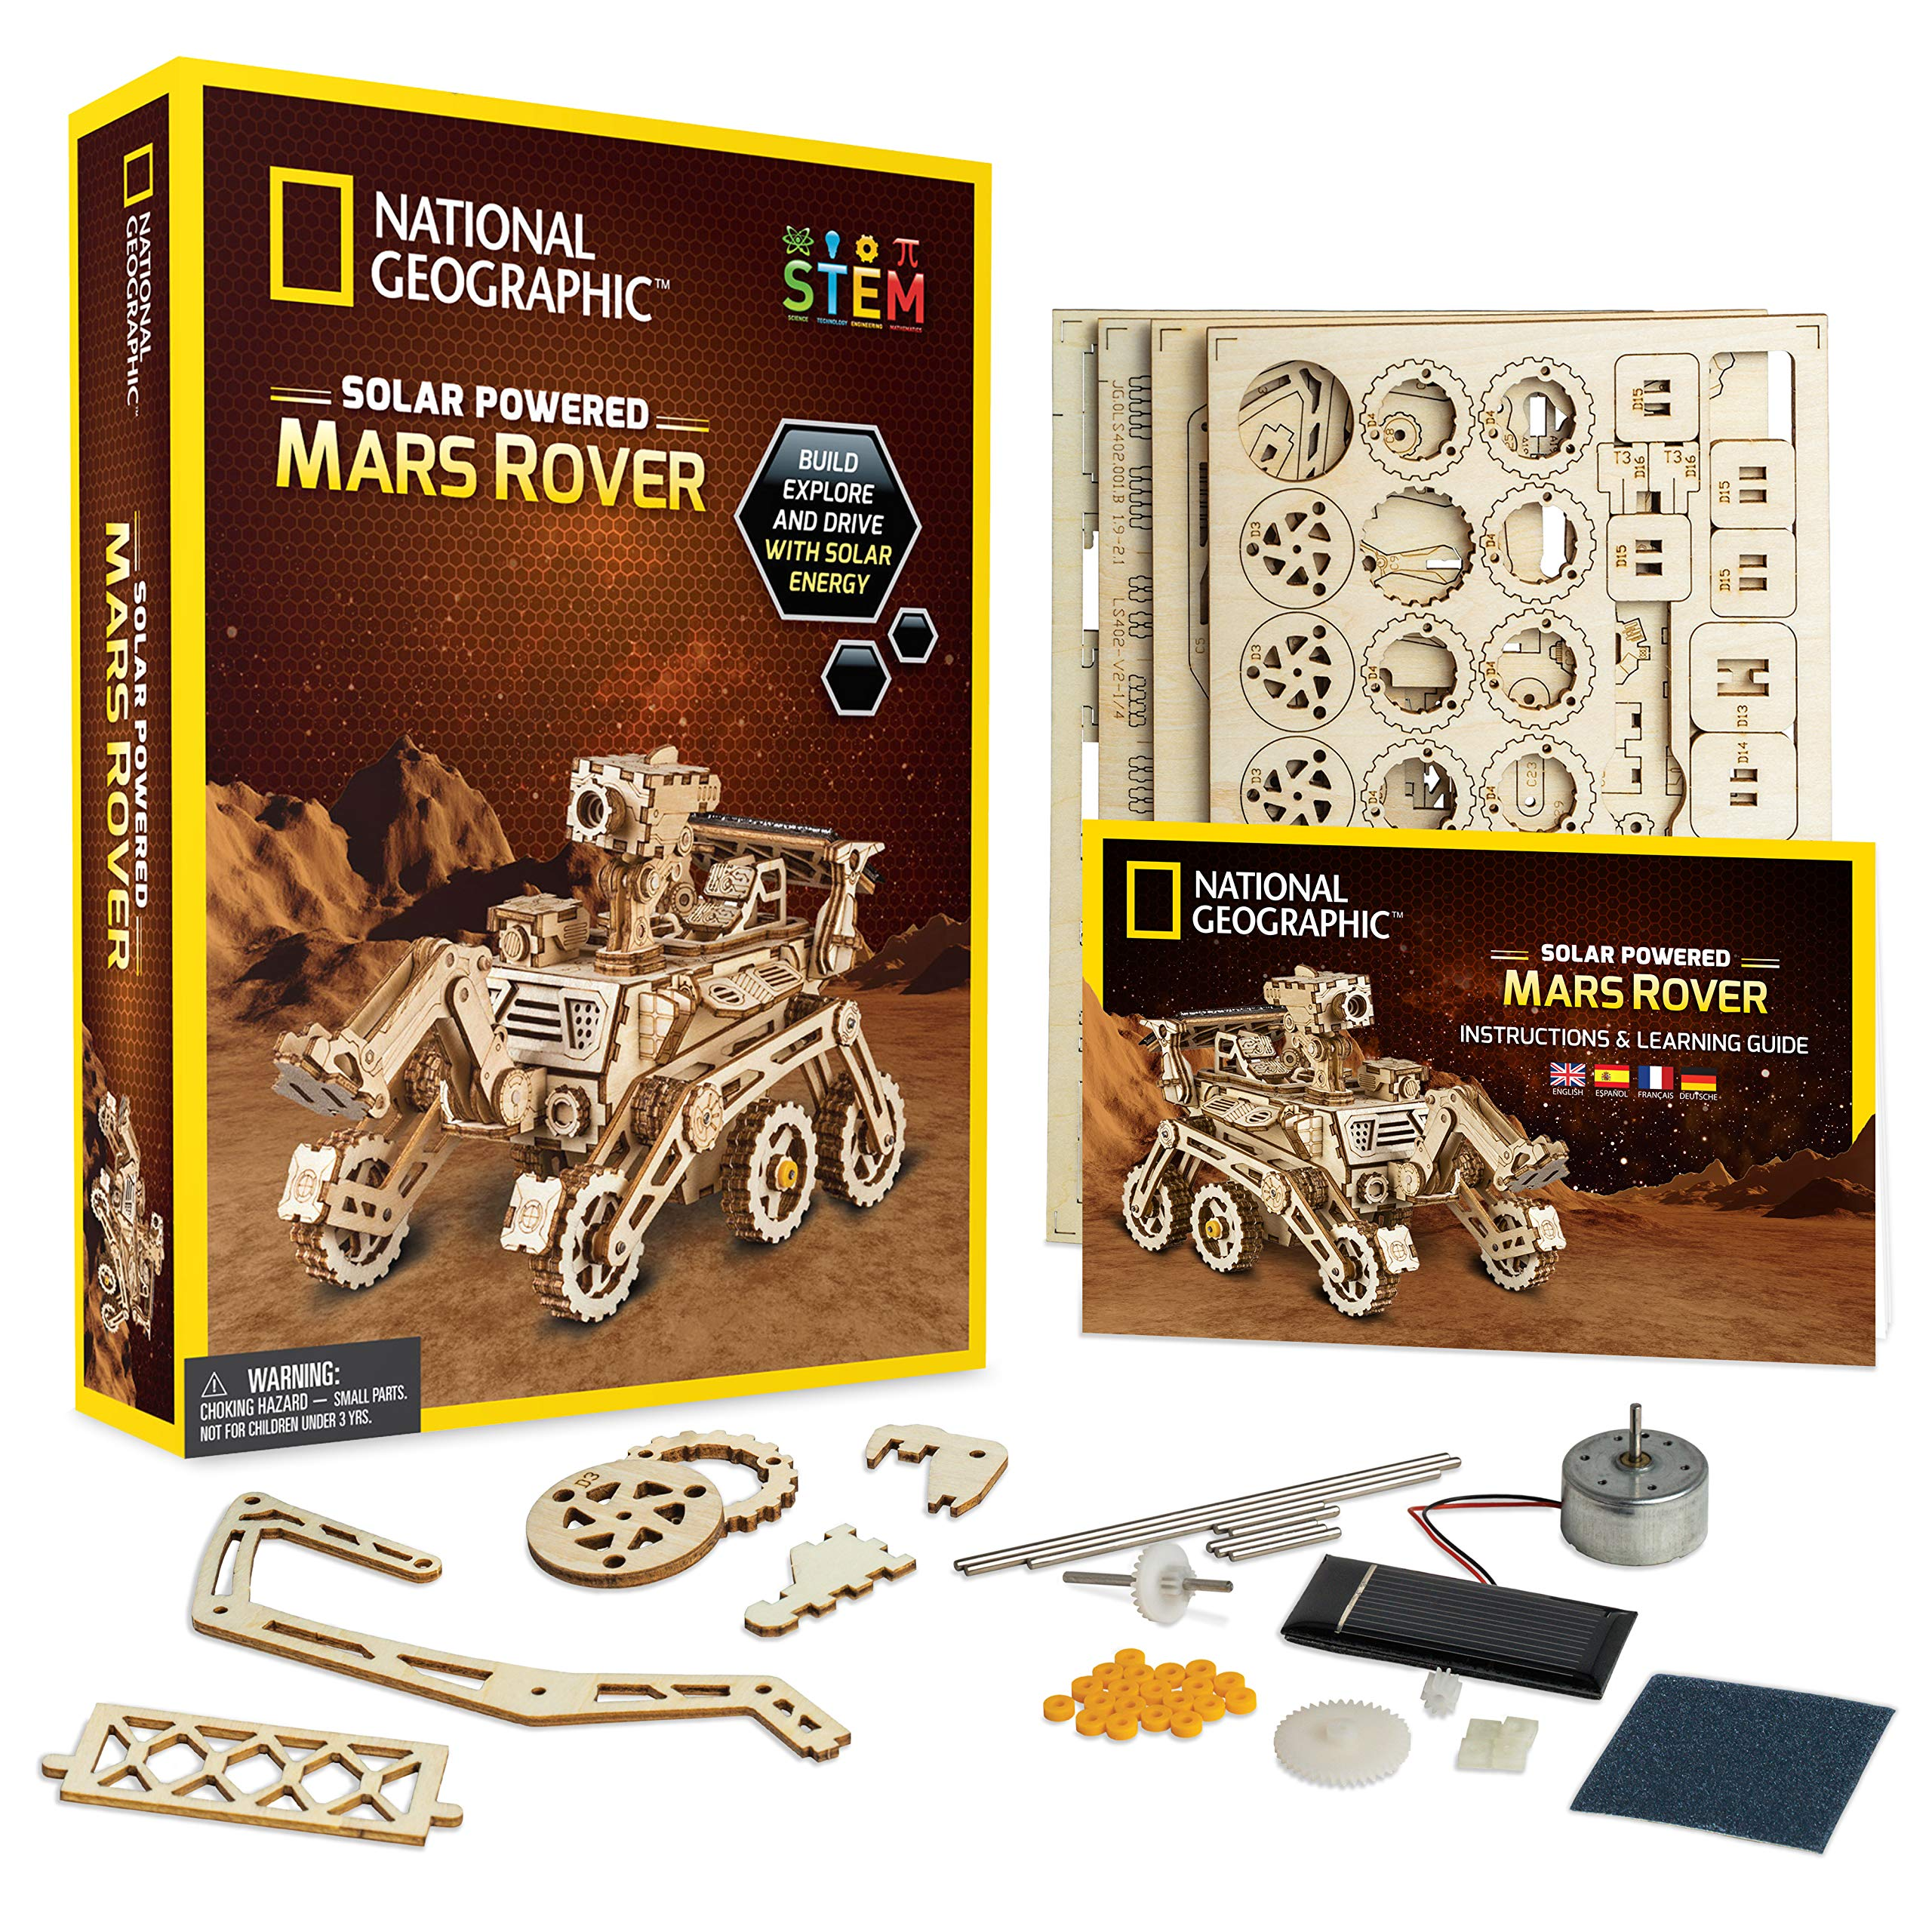 NATIONAL GEOGRAPHIC Wooden Model Kit - DIY Solar-Powered Car Includes One 3D Puzzle to Build A Mars Rover, Great Stem Toy for Girls & Boys Interested in Outer Space & Engineering by NATIONAL GEOGRAPHIC